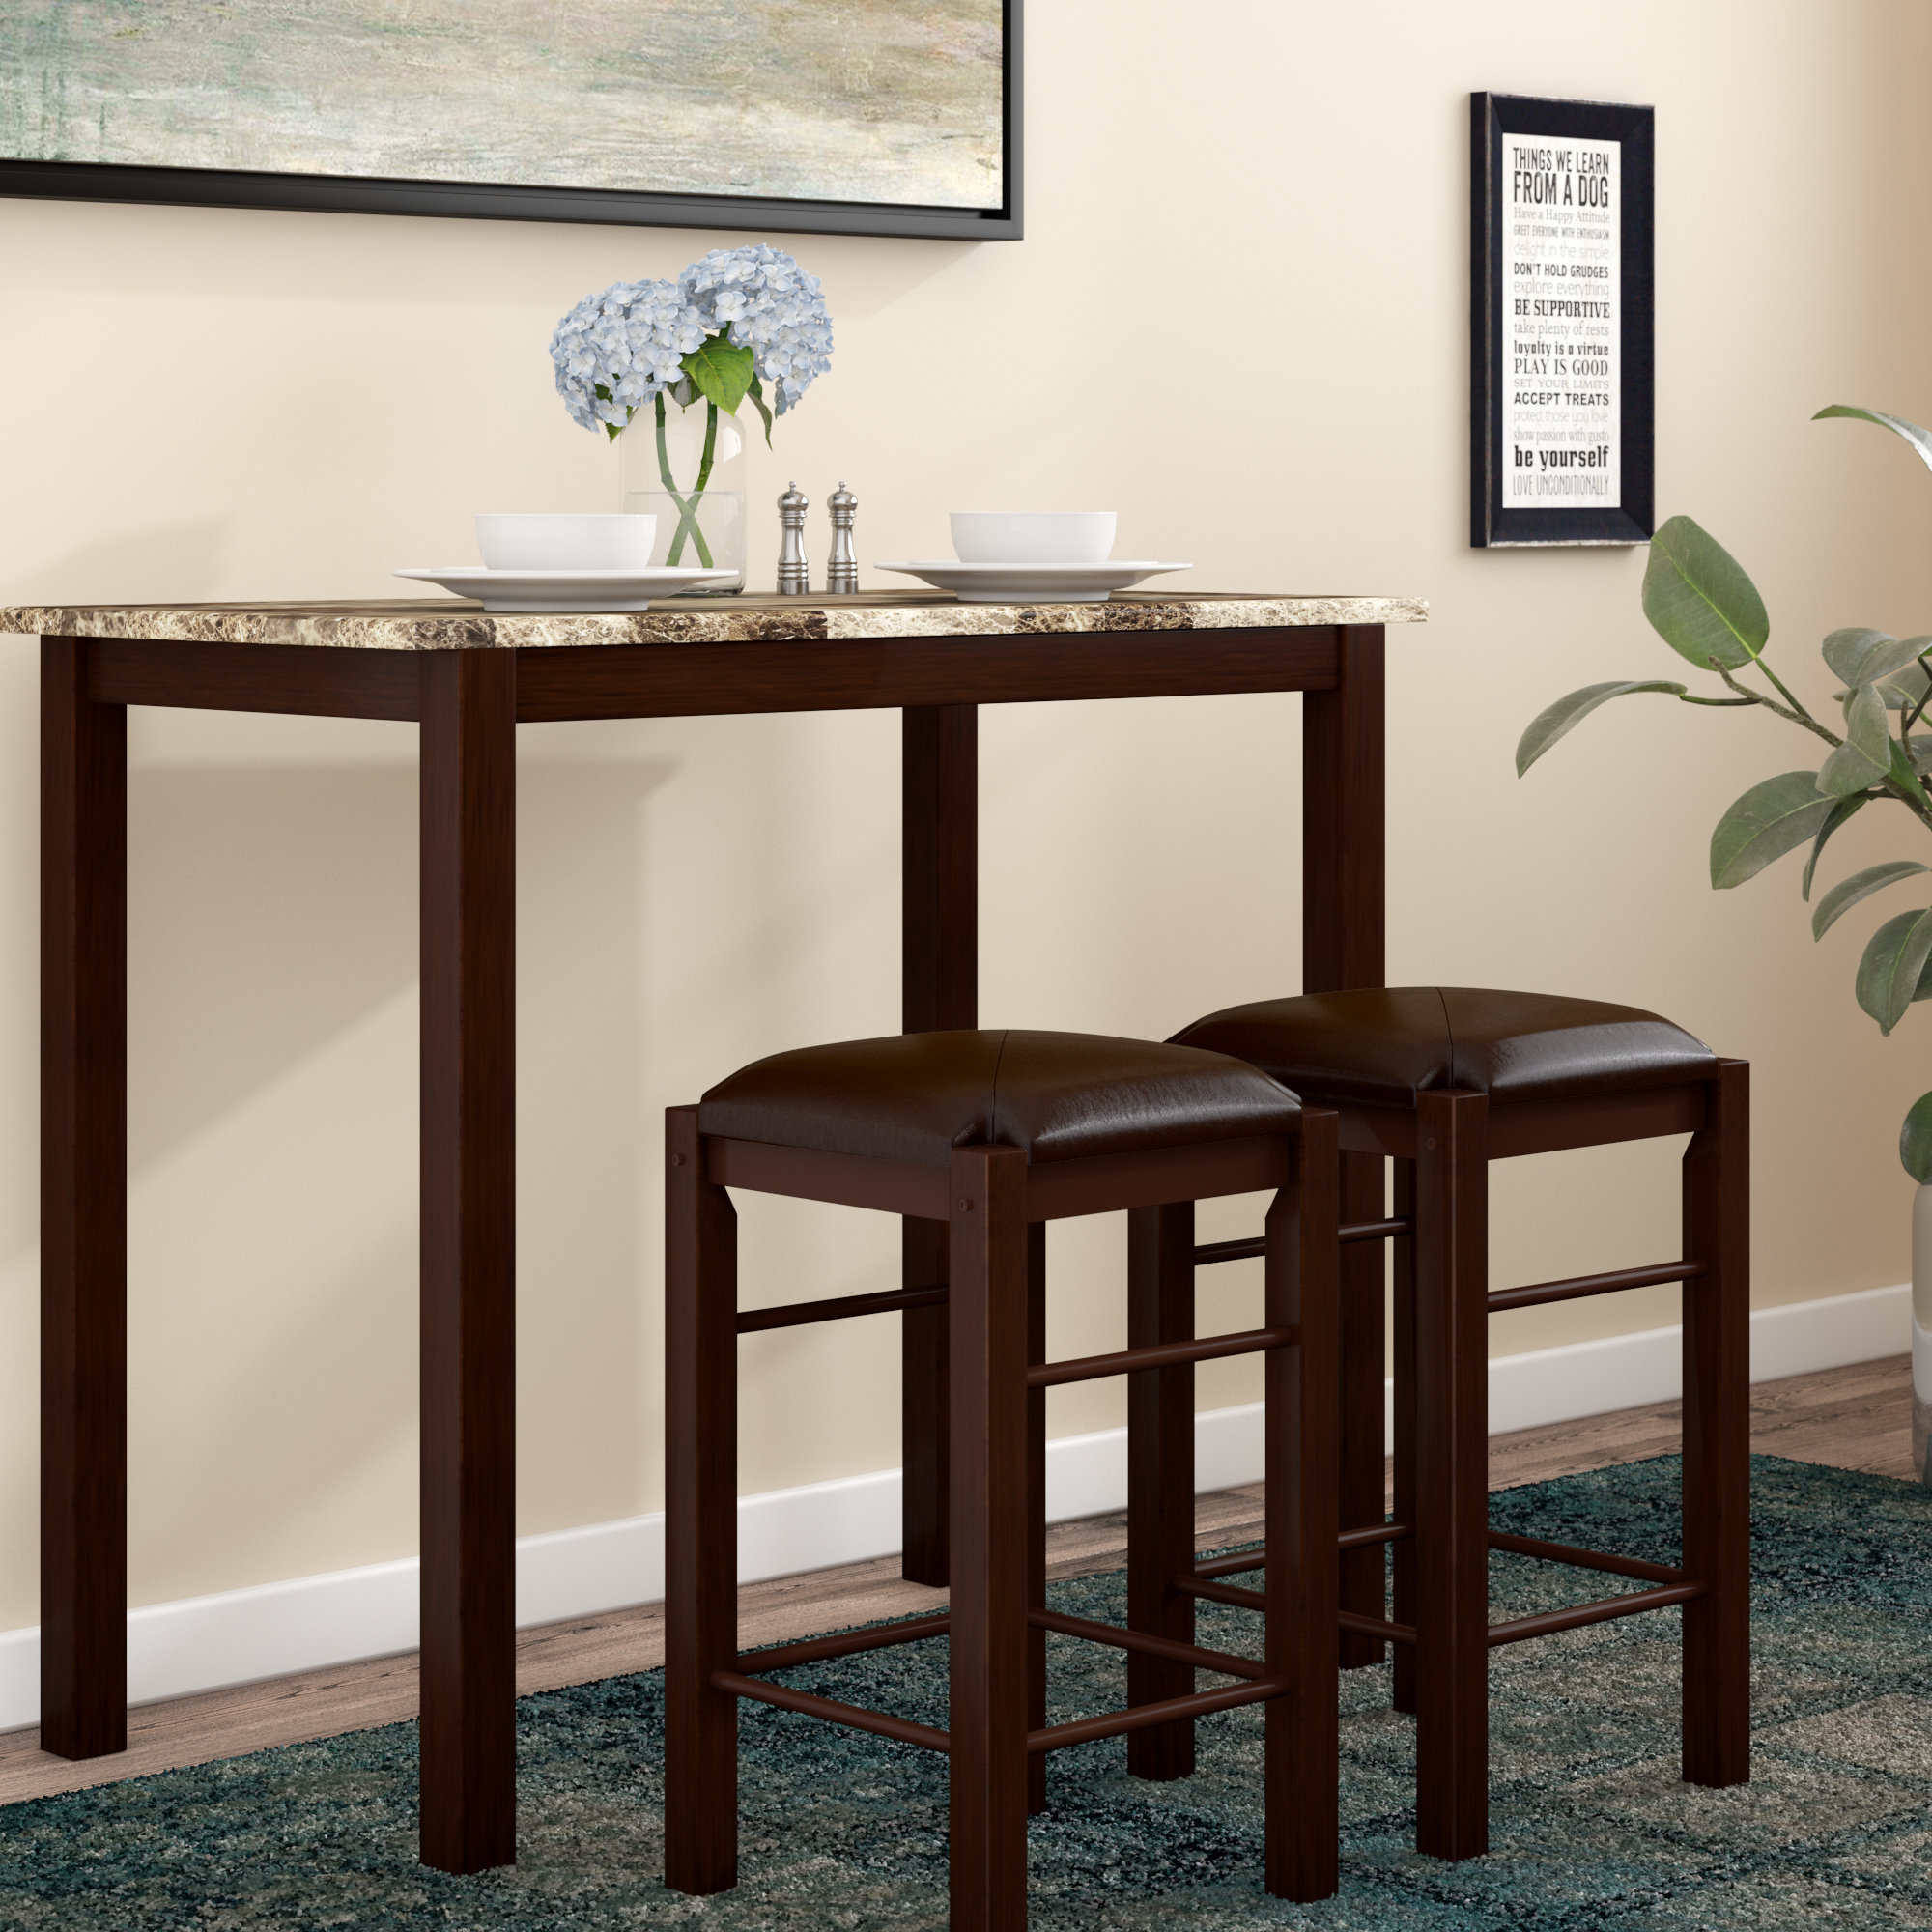 Penelope 3 Piece Counter Height Wood Dining Set Throughout Most Recent Lillard 3 Piece Breakfast Nook Dining Sets (View 7 of 20)